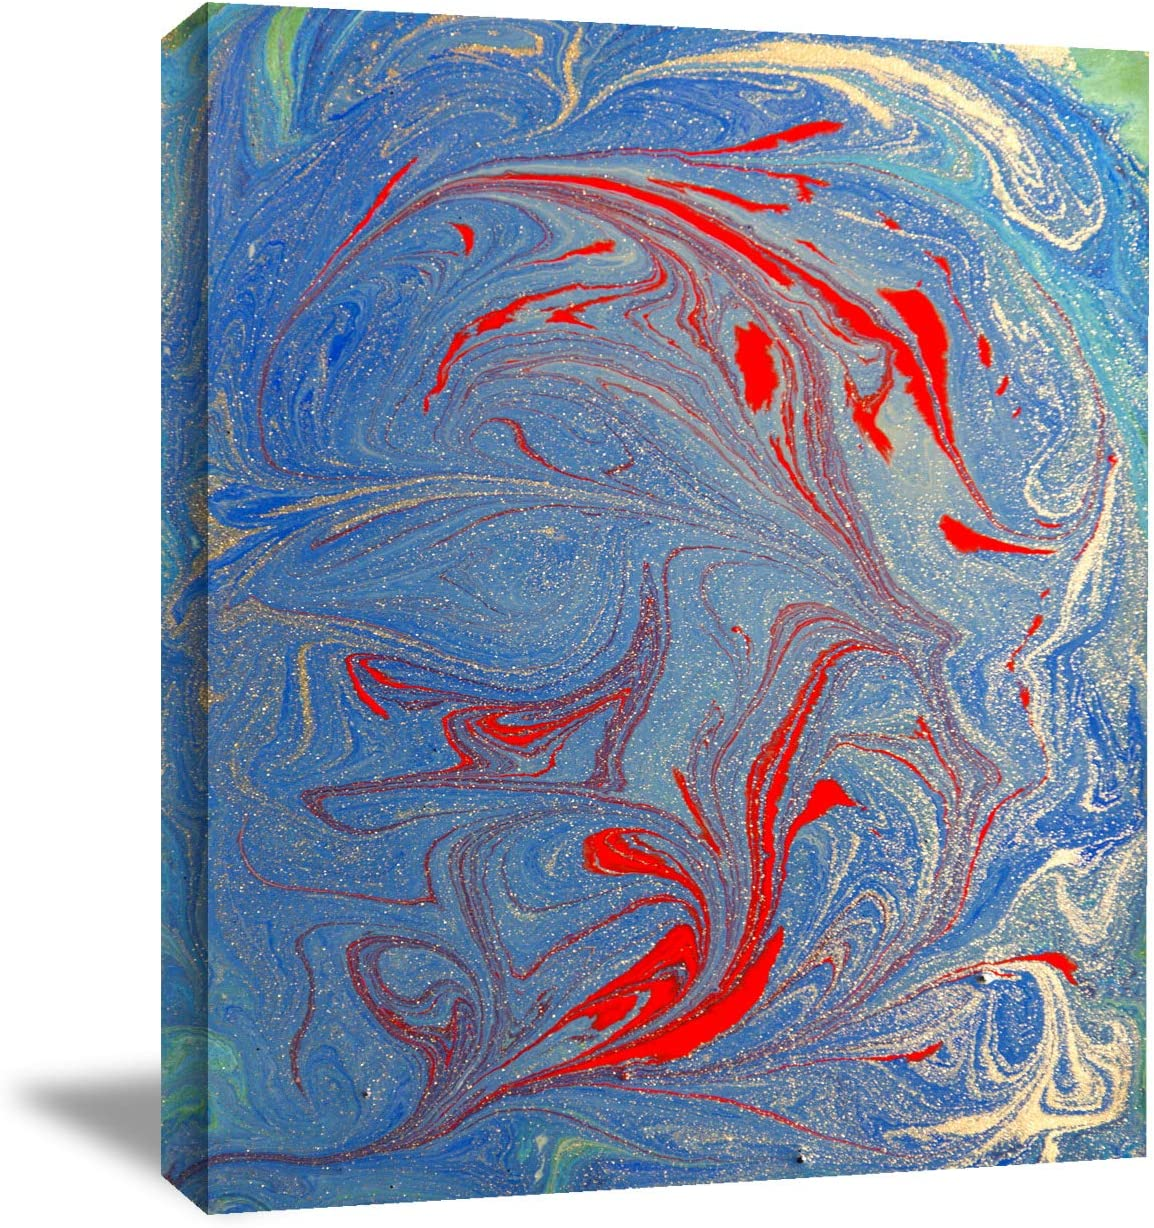 Looife Canvas Wall Art - 18x24 Green Blue Colorful Red Manufacturer Superior direct delivery Inch and